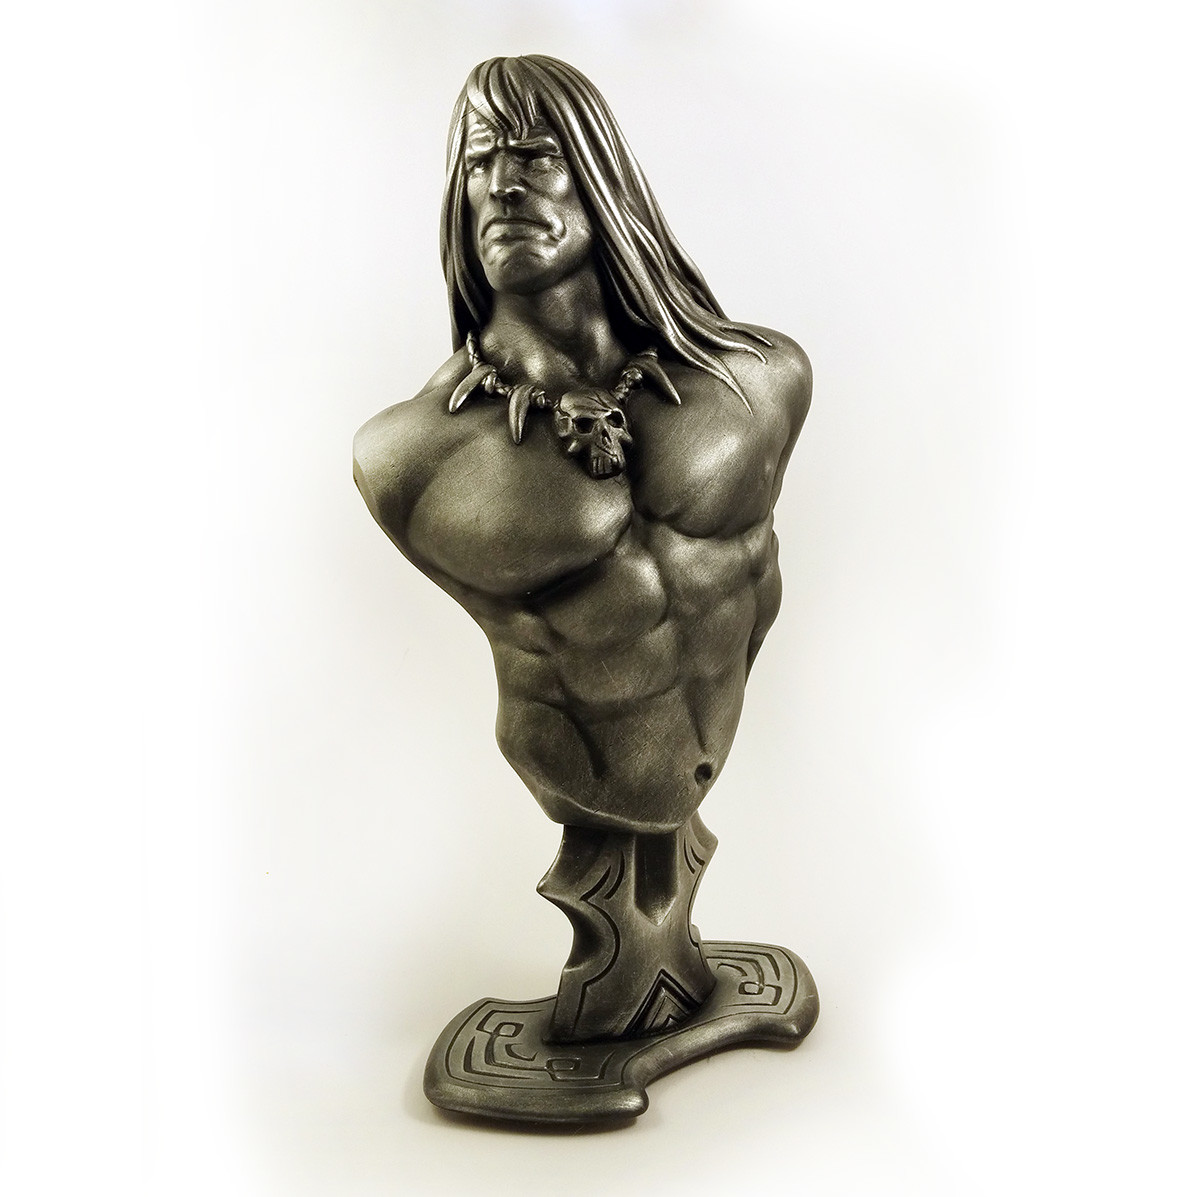 Conan the Barbarian (3D printed bust)